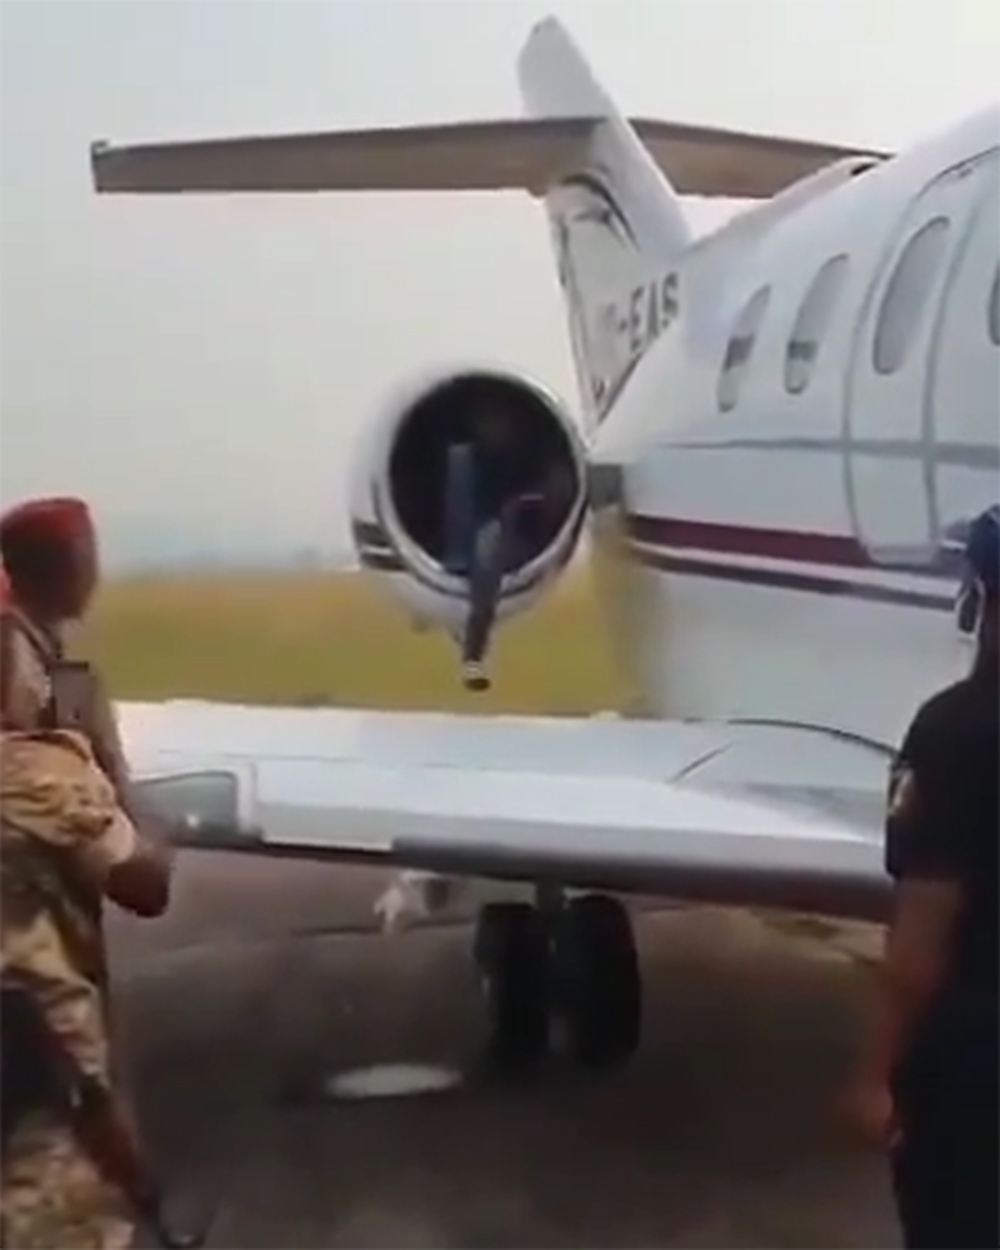 A teenager in Congo tried to travel to Europe by hiding in the engine of a plane - AIRLIVE